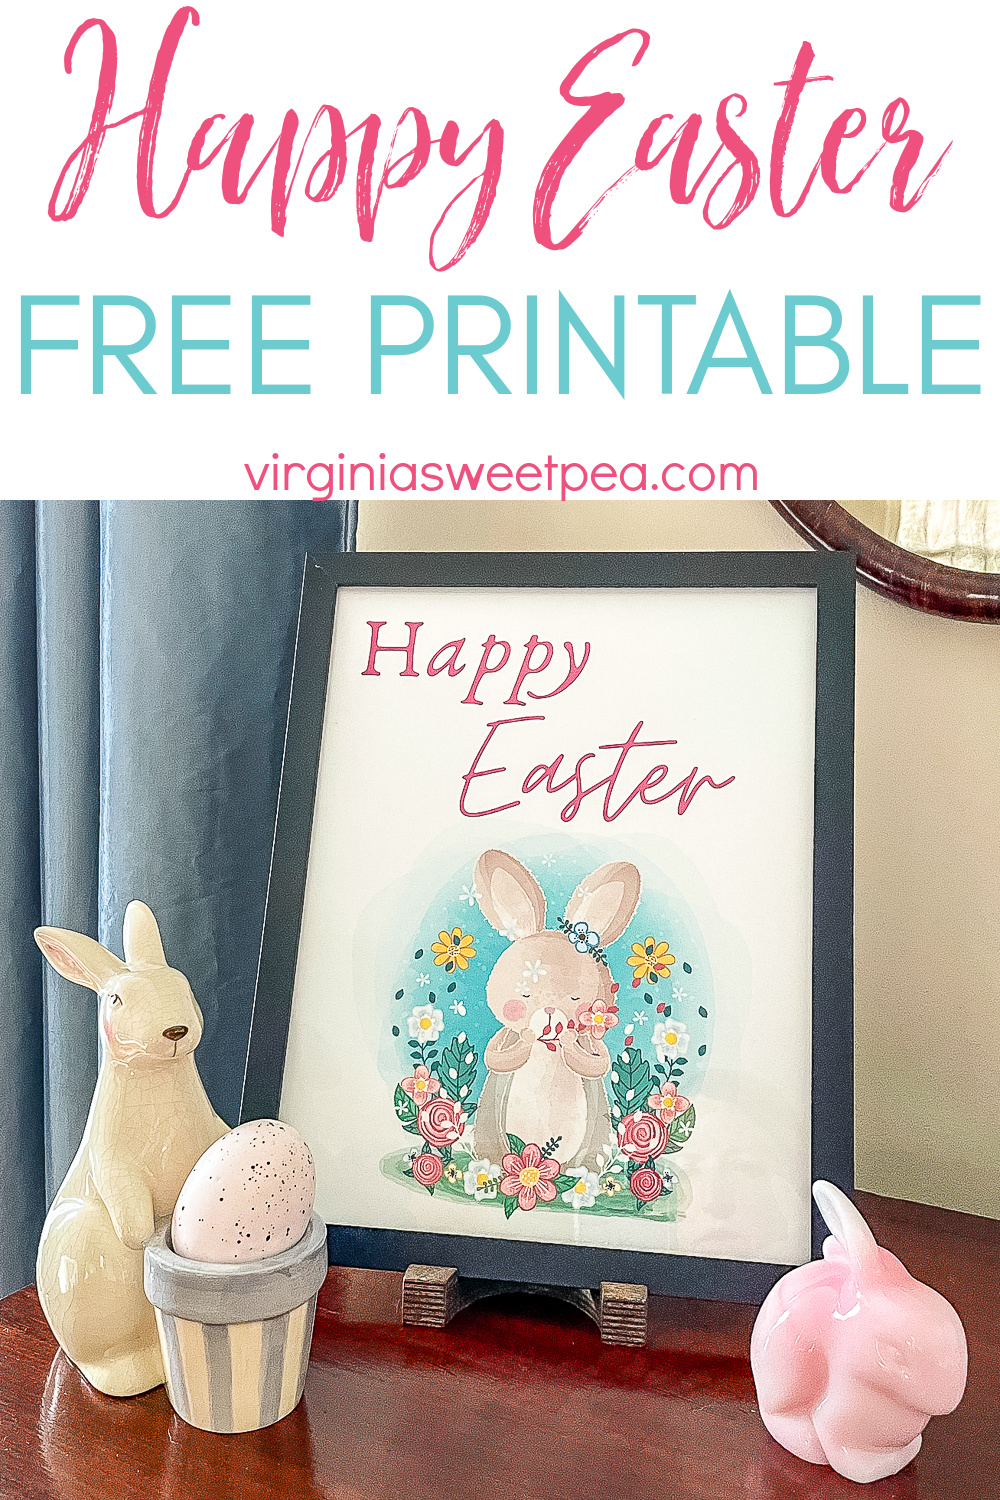 Easily decorate for Easter with free printable Happy Easter frameable art.  Use this Easter free printable displayed in a frame or on a clipboard, on a bulletin board, a refrigerator, or on an office wall.   via @spaula